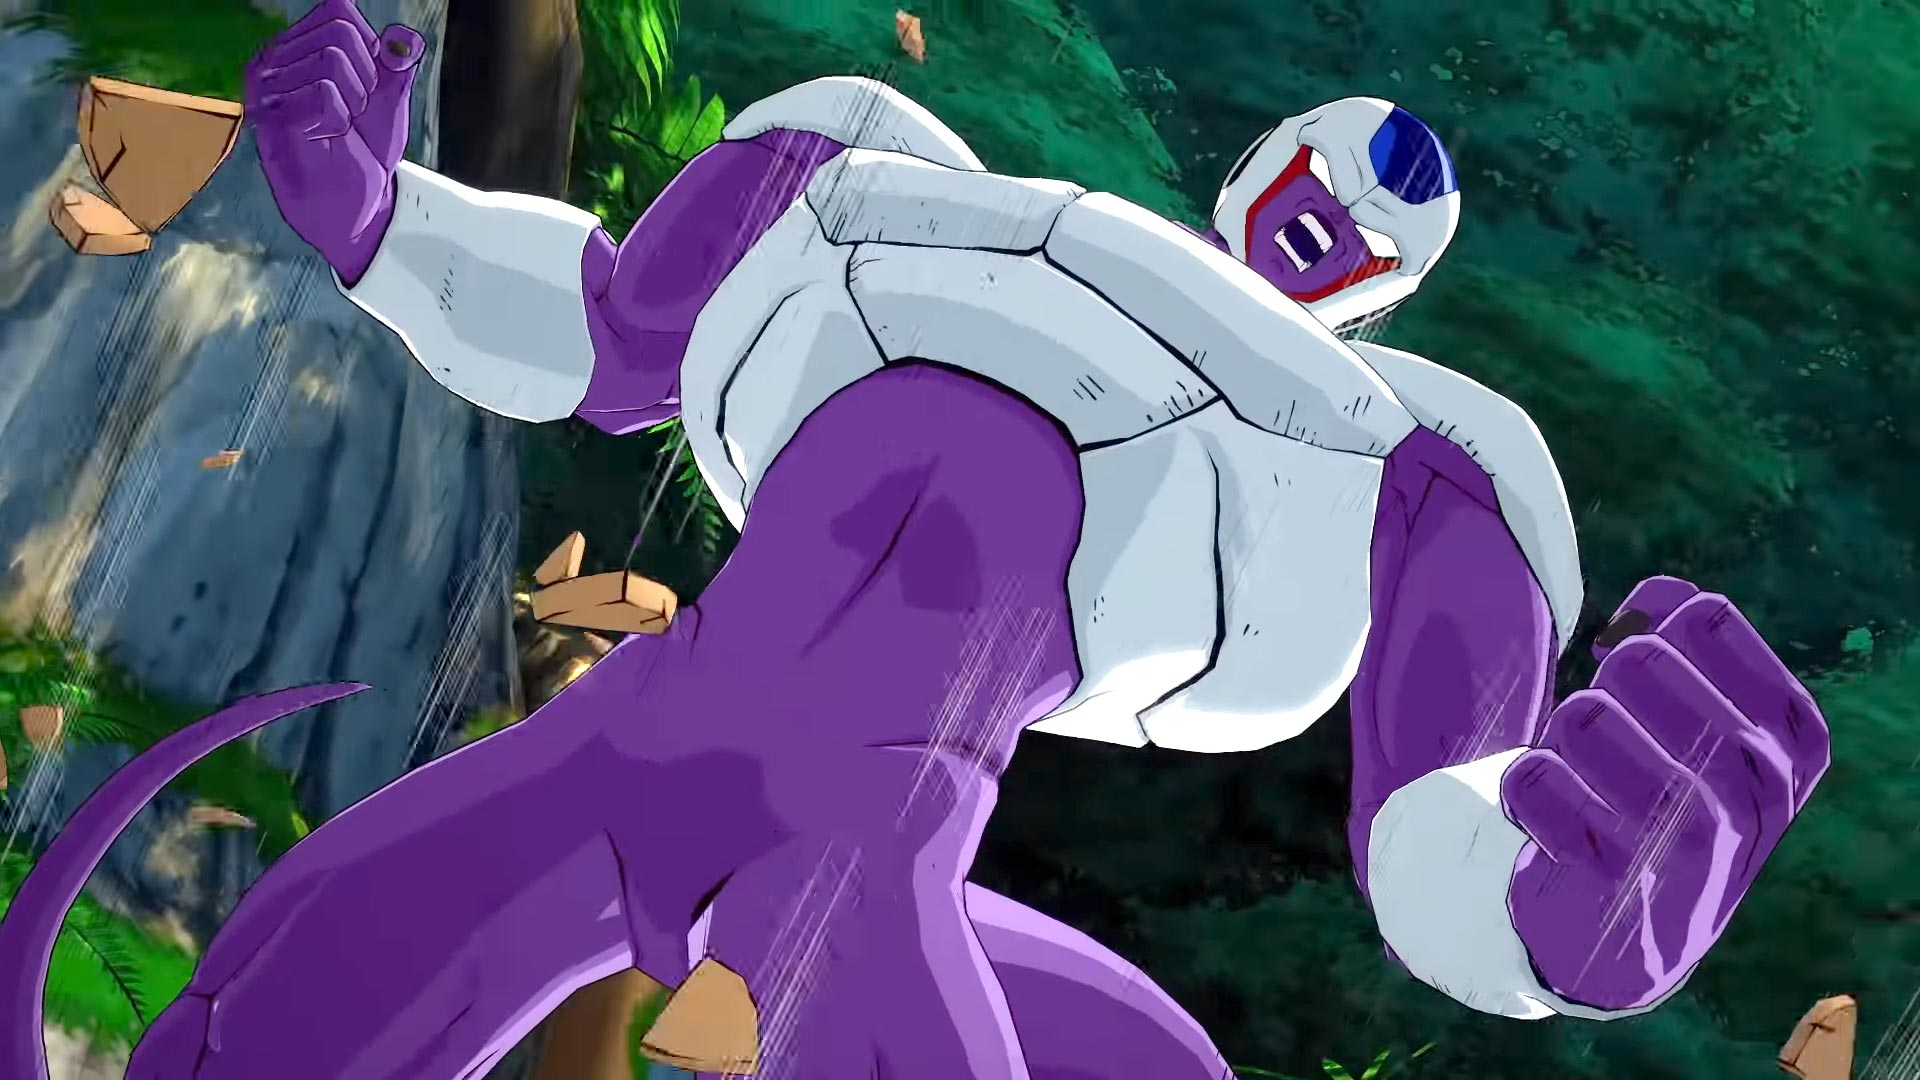 Cooler in Dragon Ball FighterZ 3 out of 9 image gallery